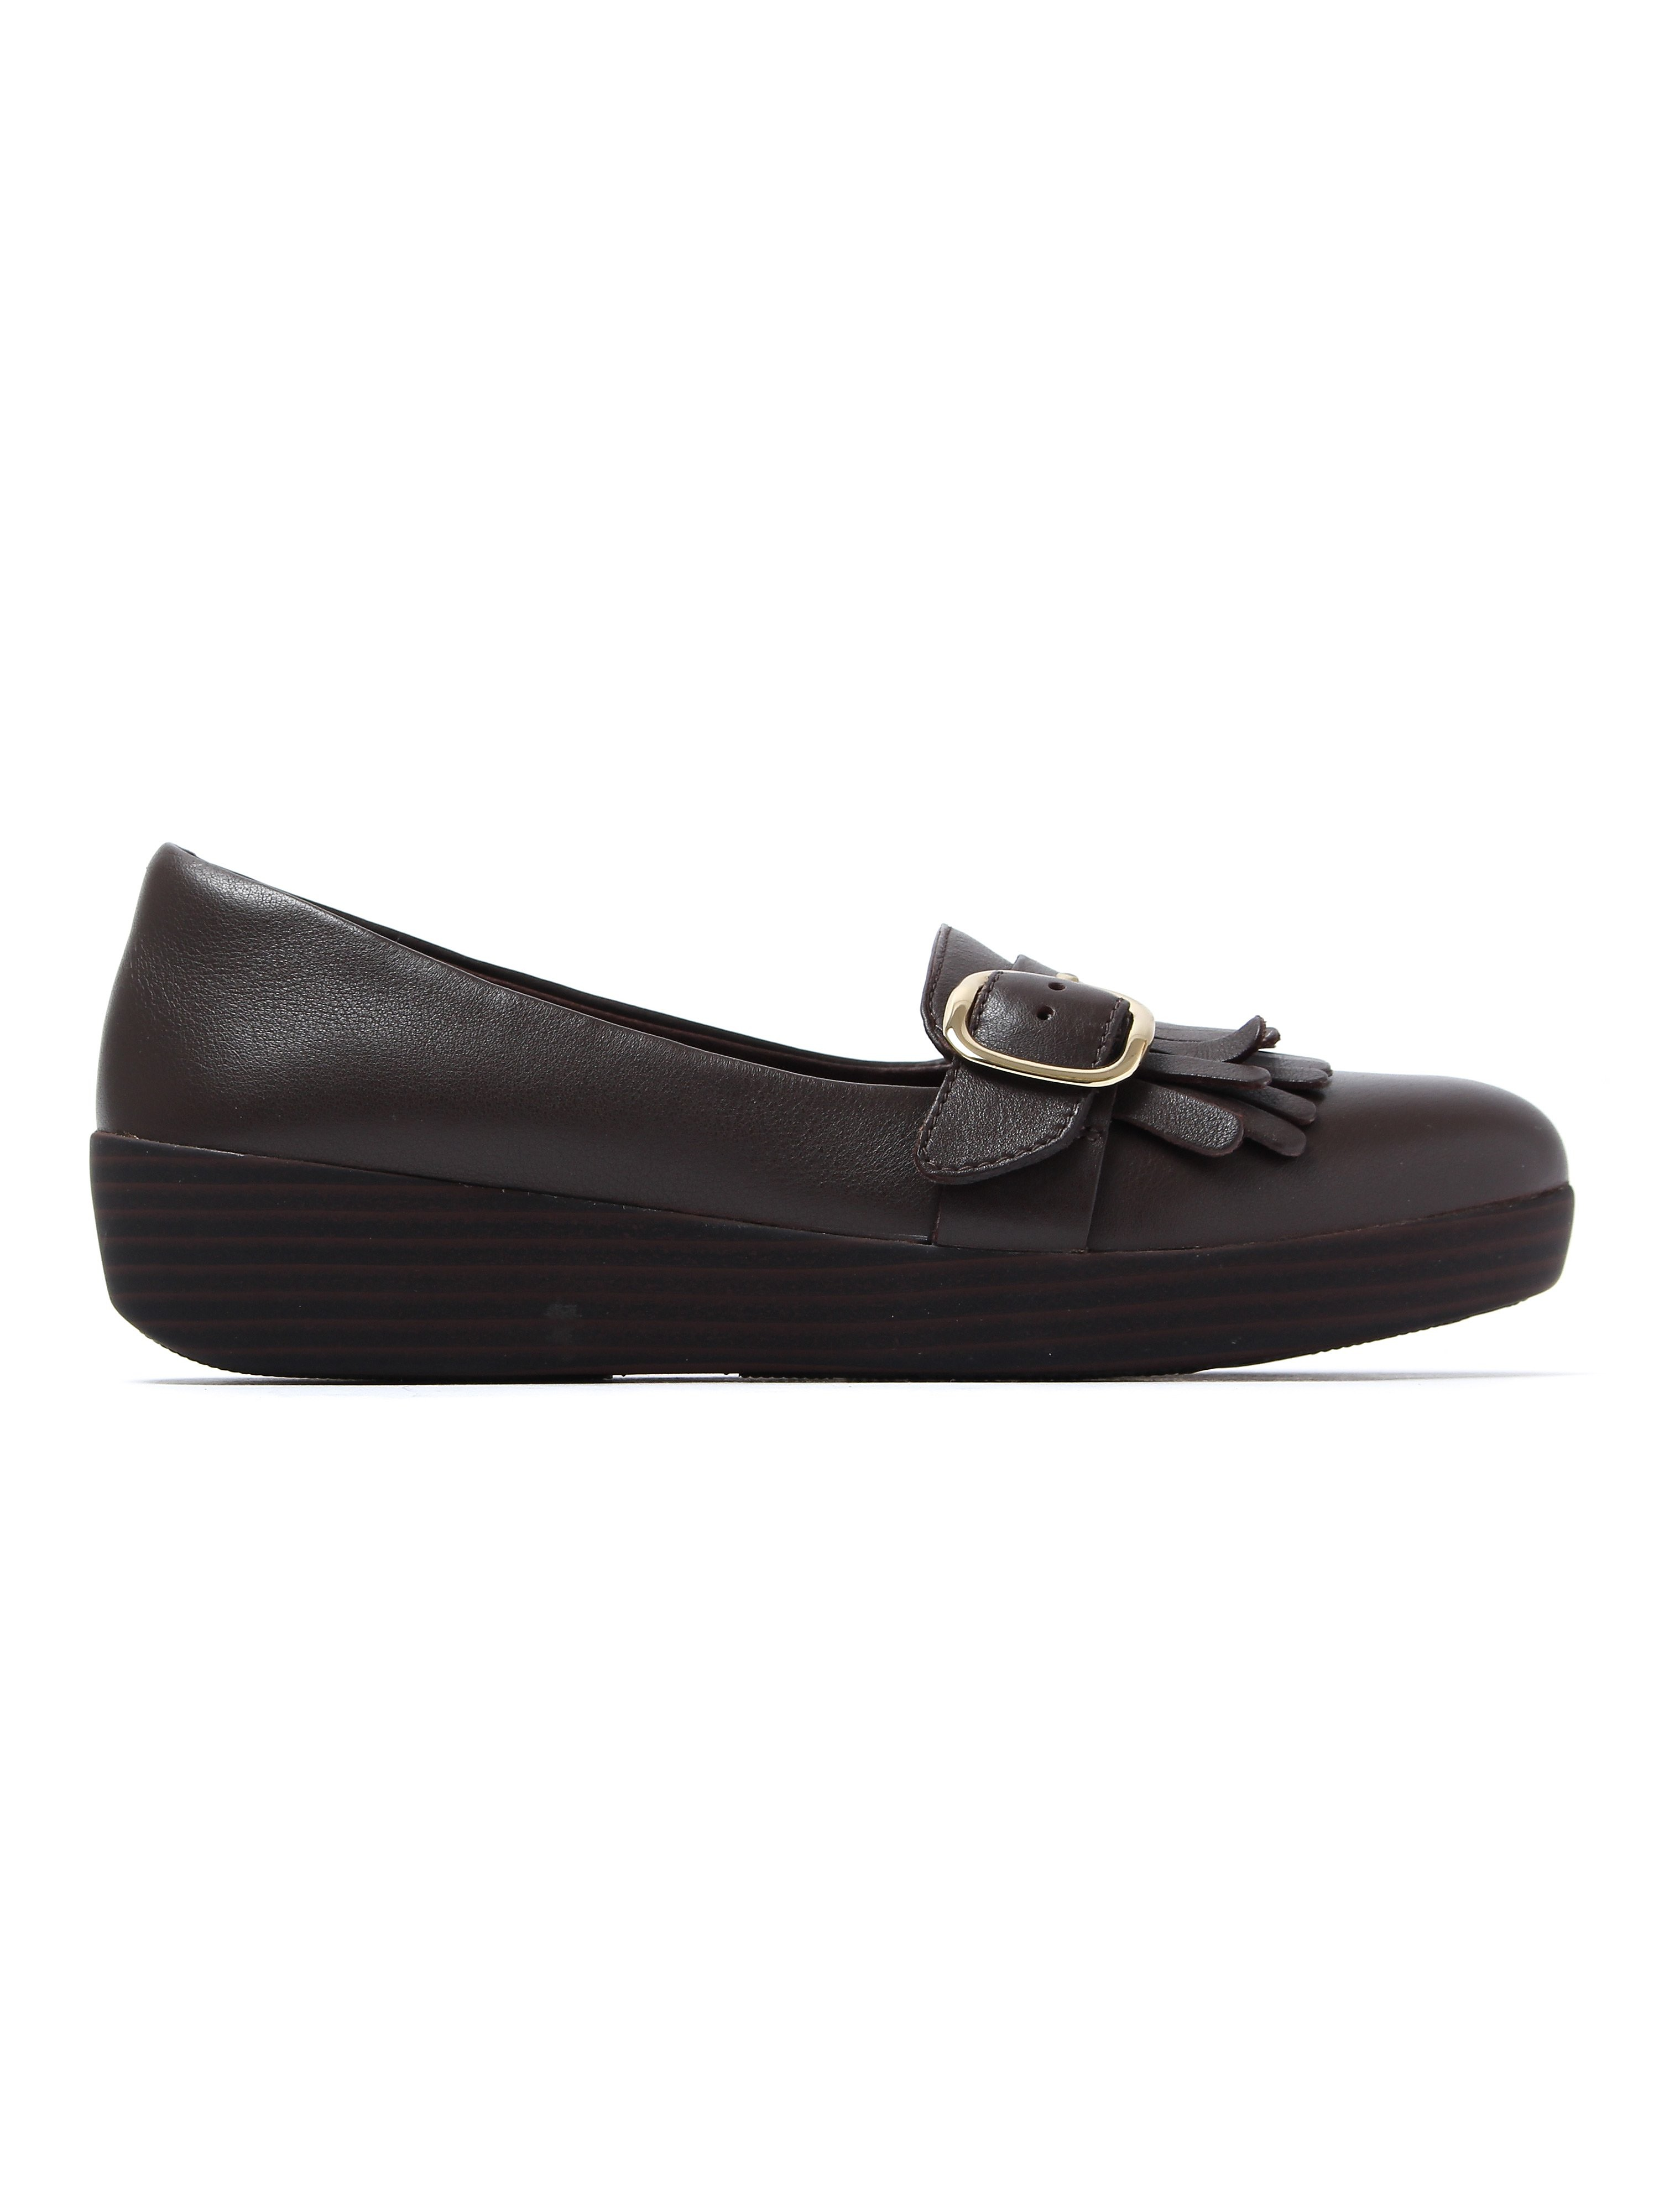 FitFlop Women's Buckle Sneakerloafers - Chocolate Brown